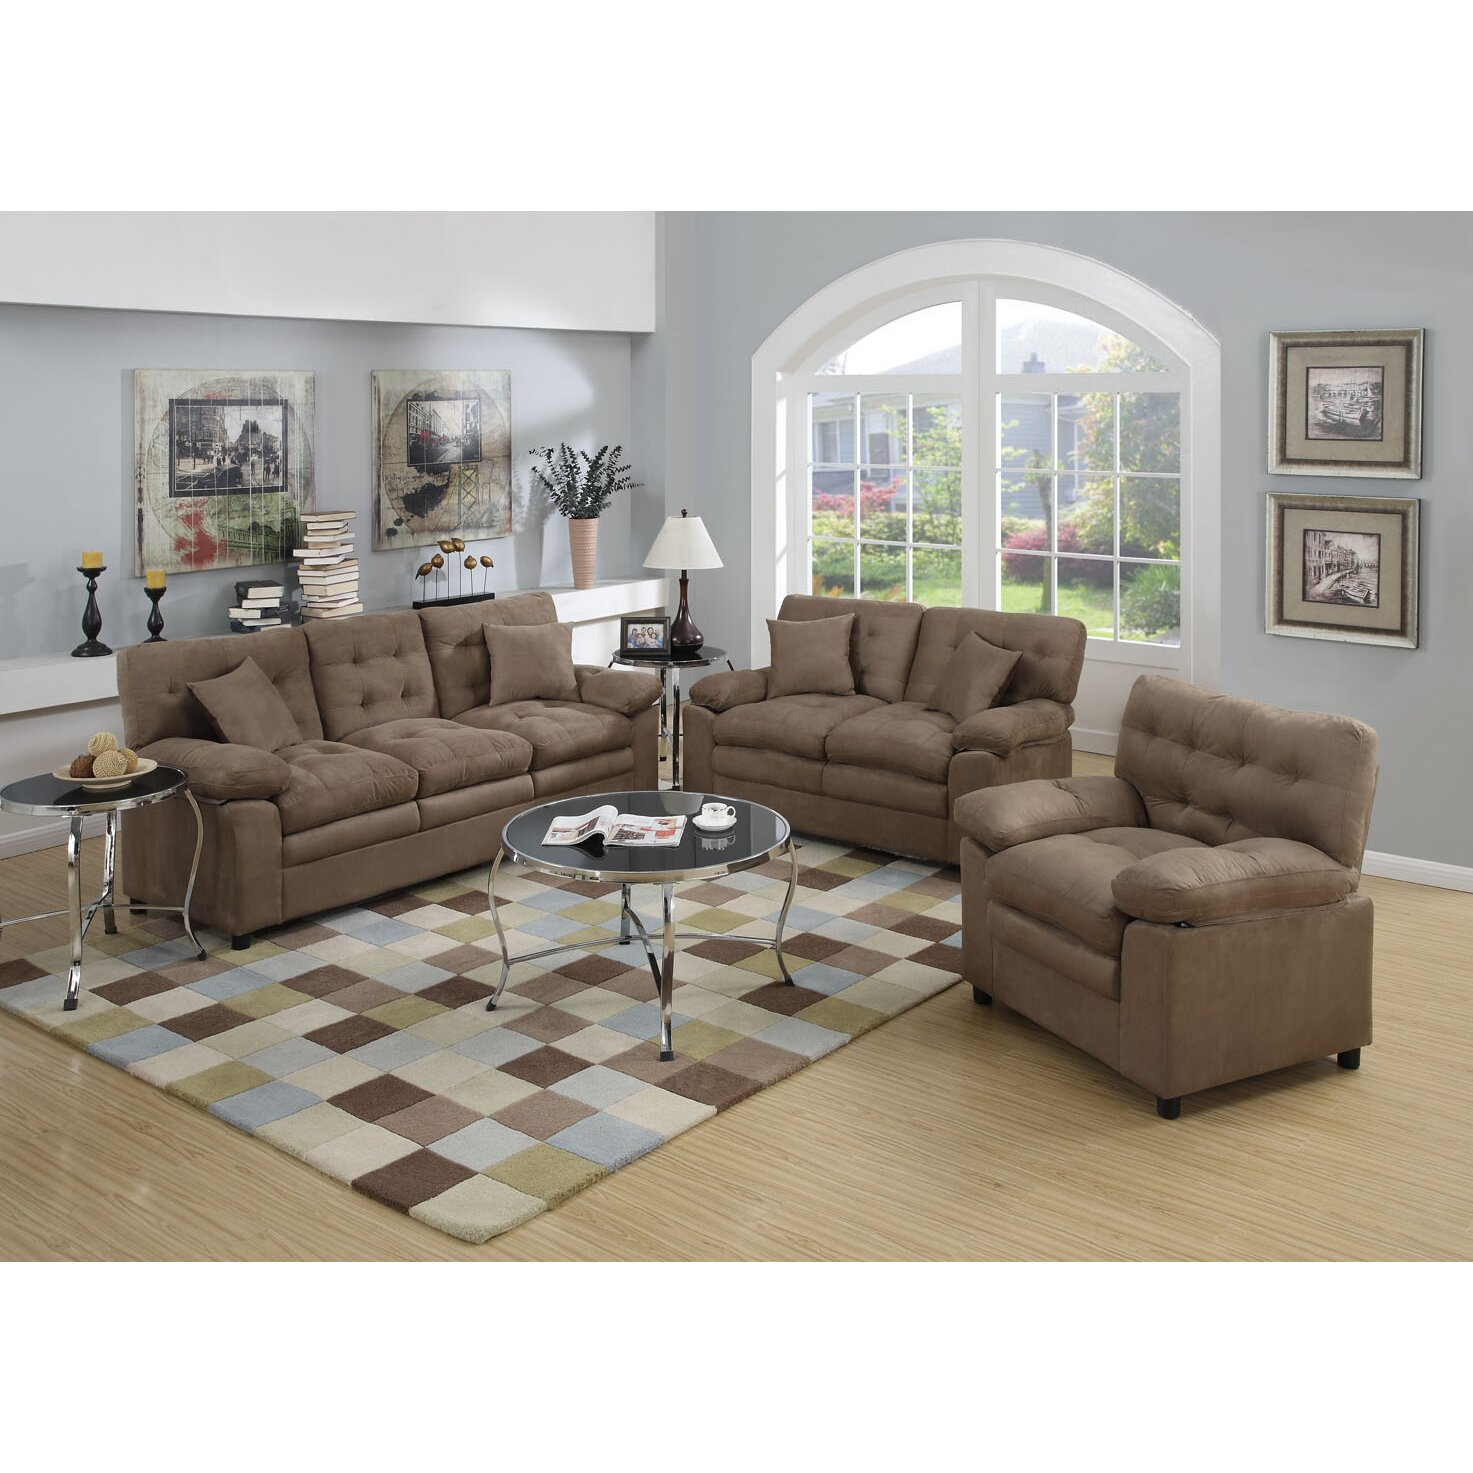 Poundex bobkona colona 3 piece living room set reviews for Lounge room furniture